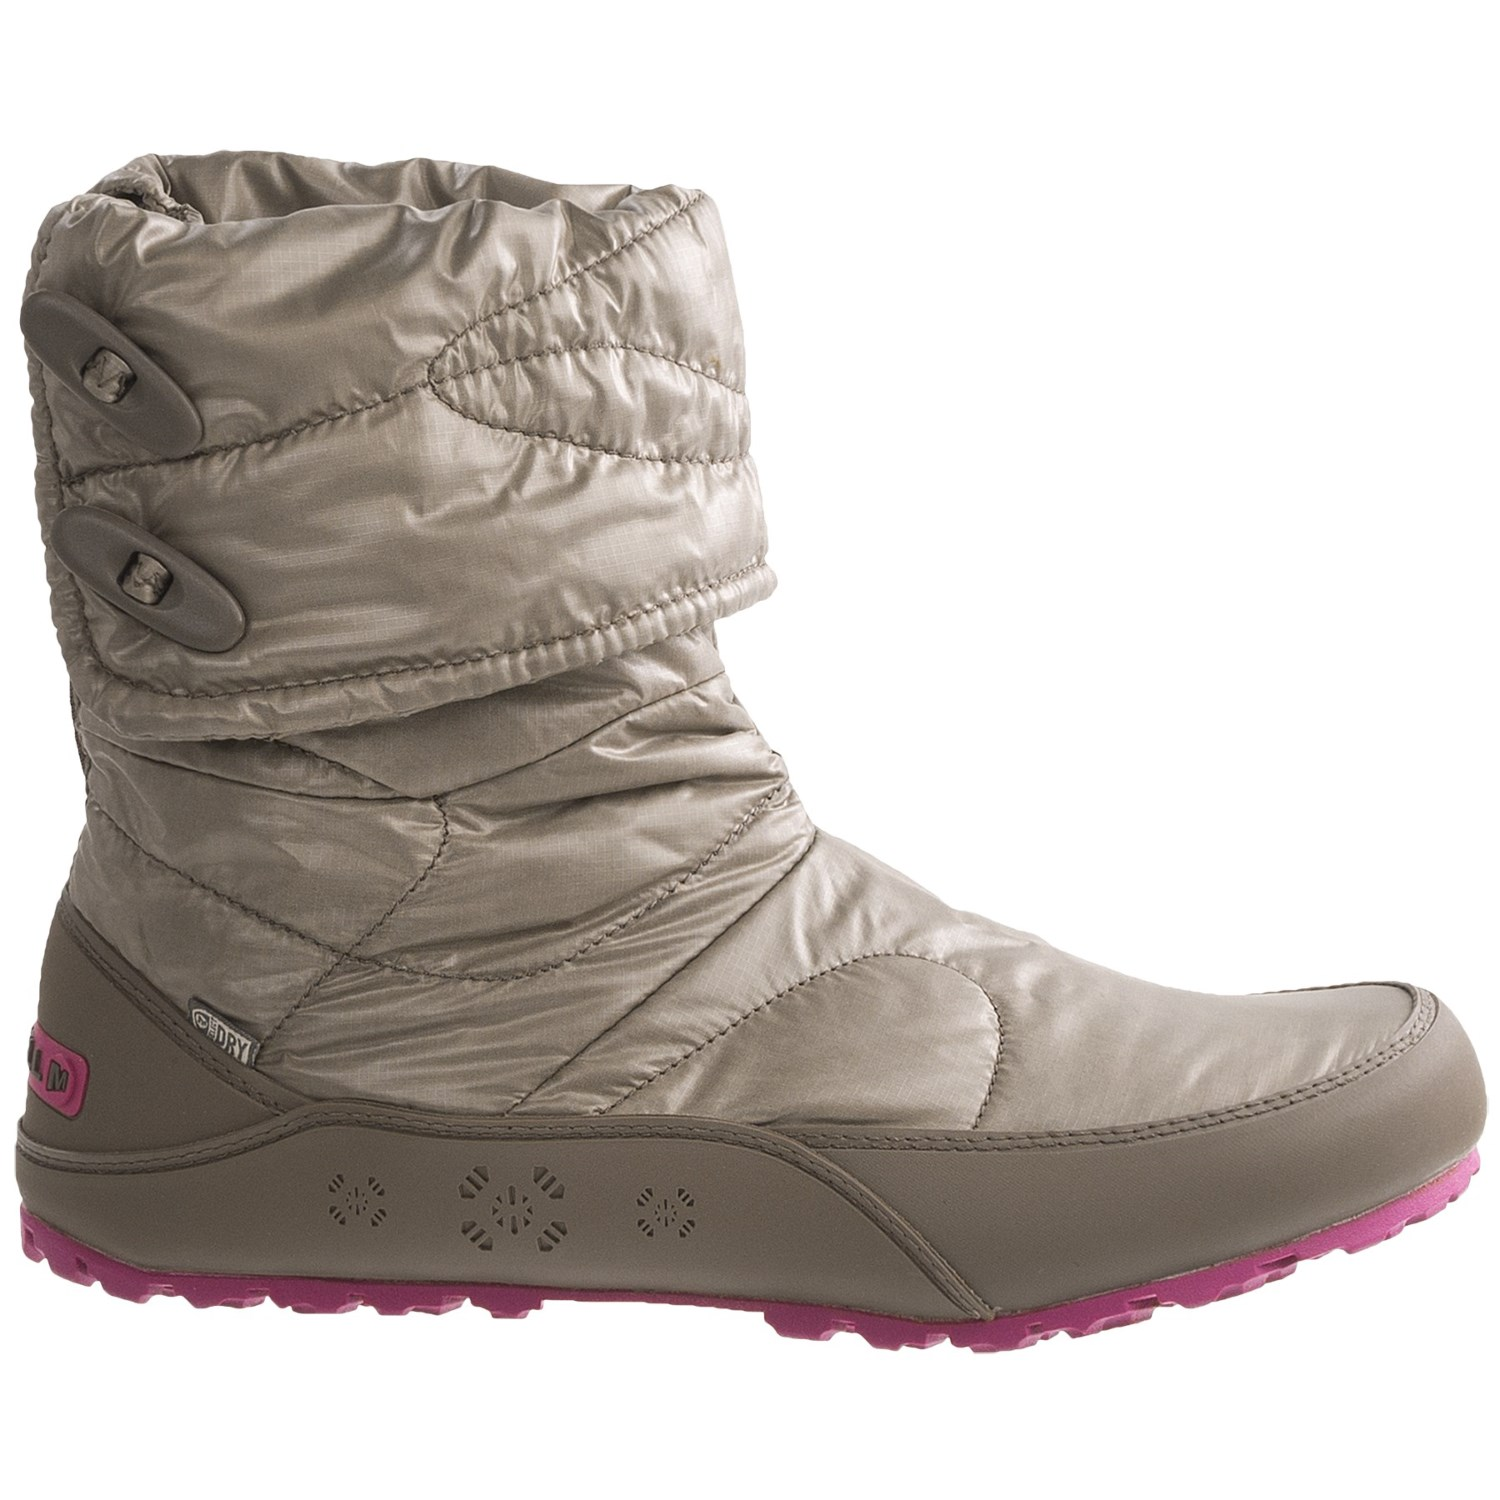 Beautiful Womens Snow Boots Clearance | Myideasbedroom.com